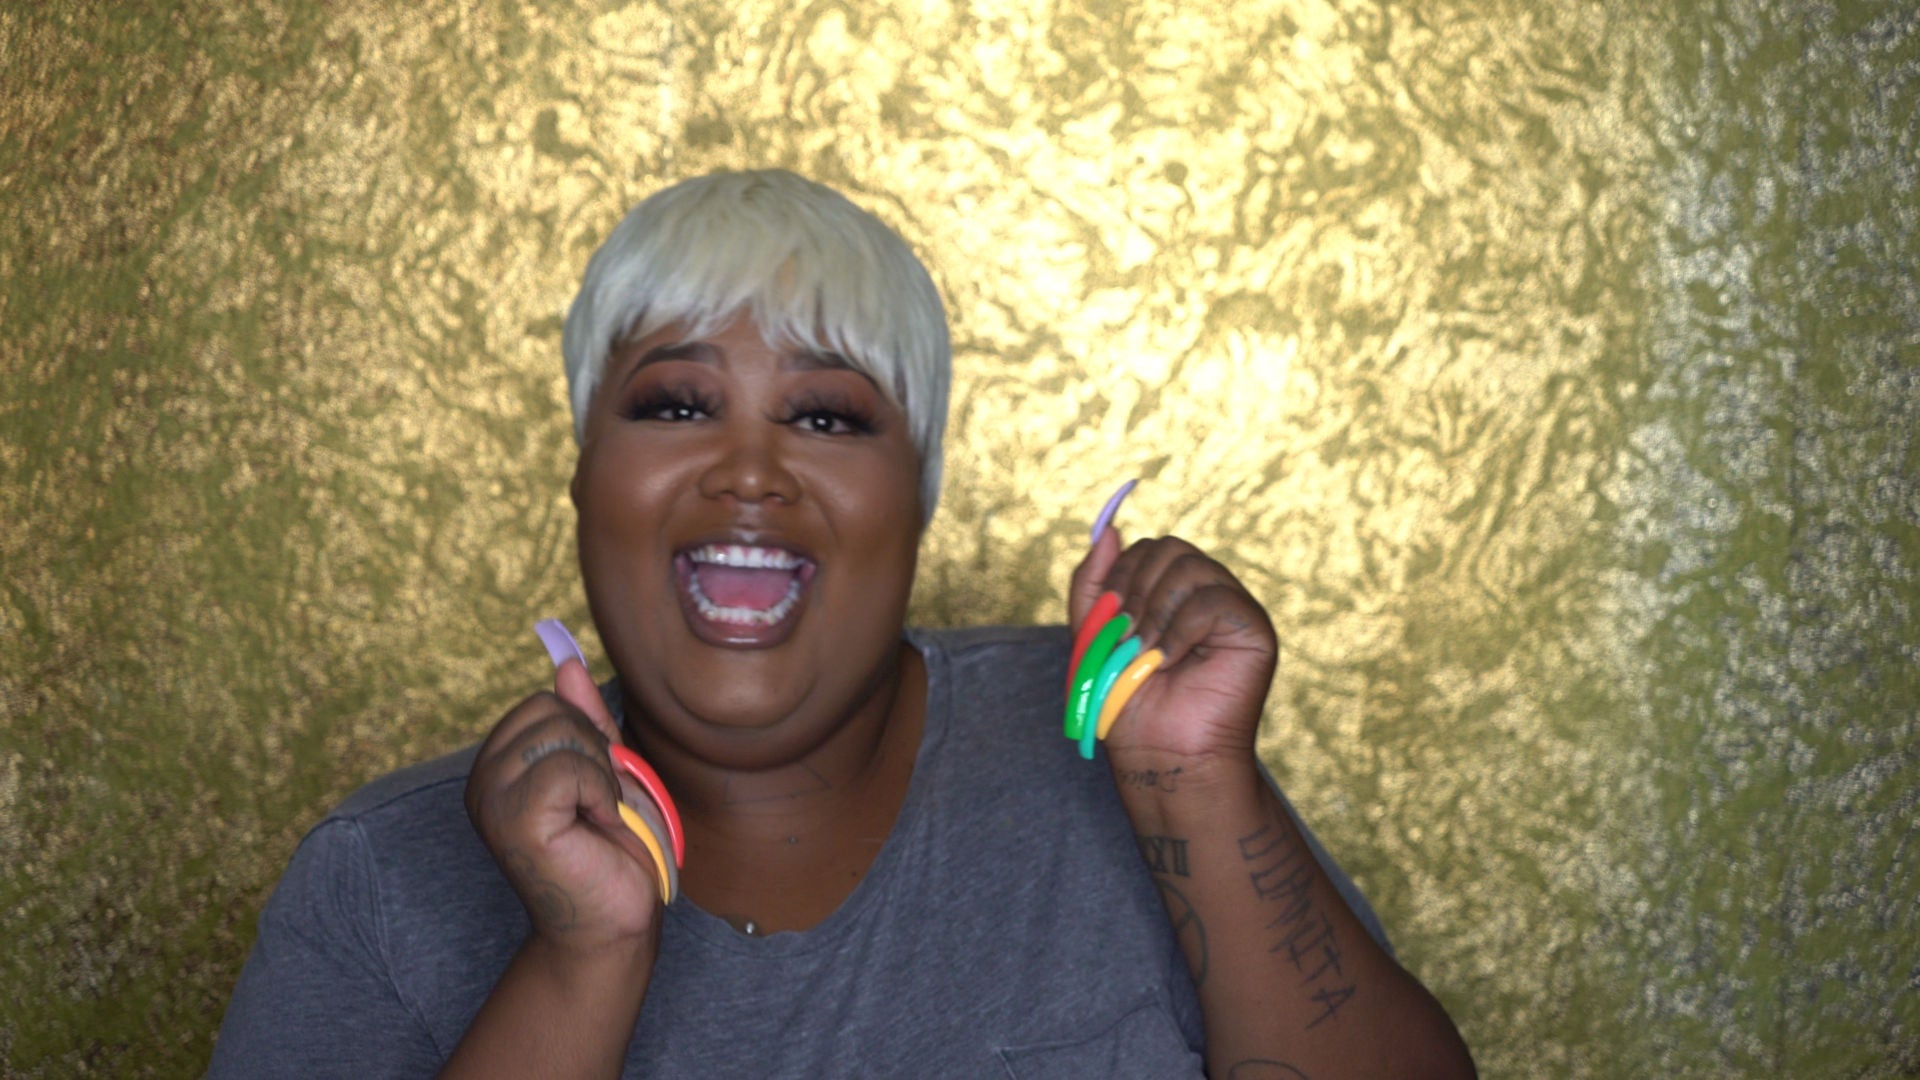 Amber 'Jstlbby' Wagner Is A Lot More Than Just Long, Colorful Nails And Funny Instagram Videos